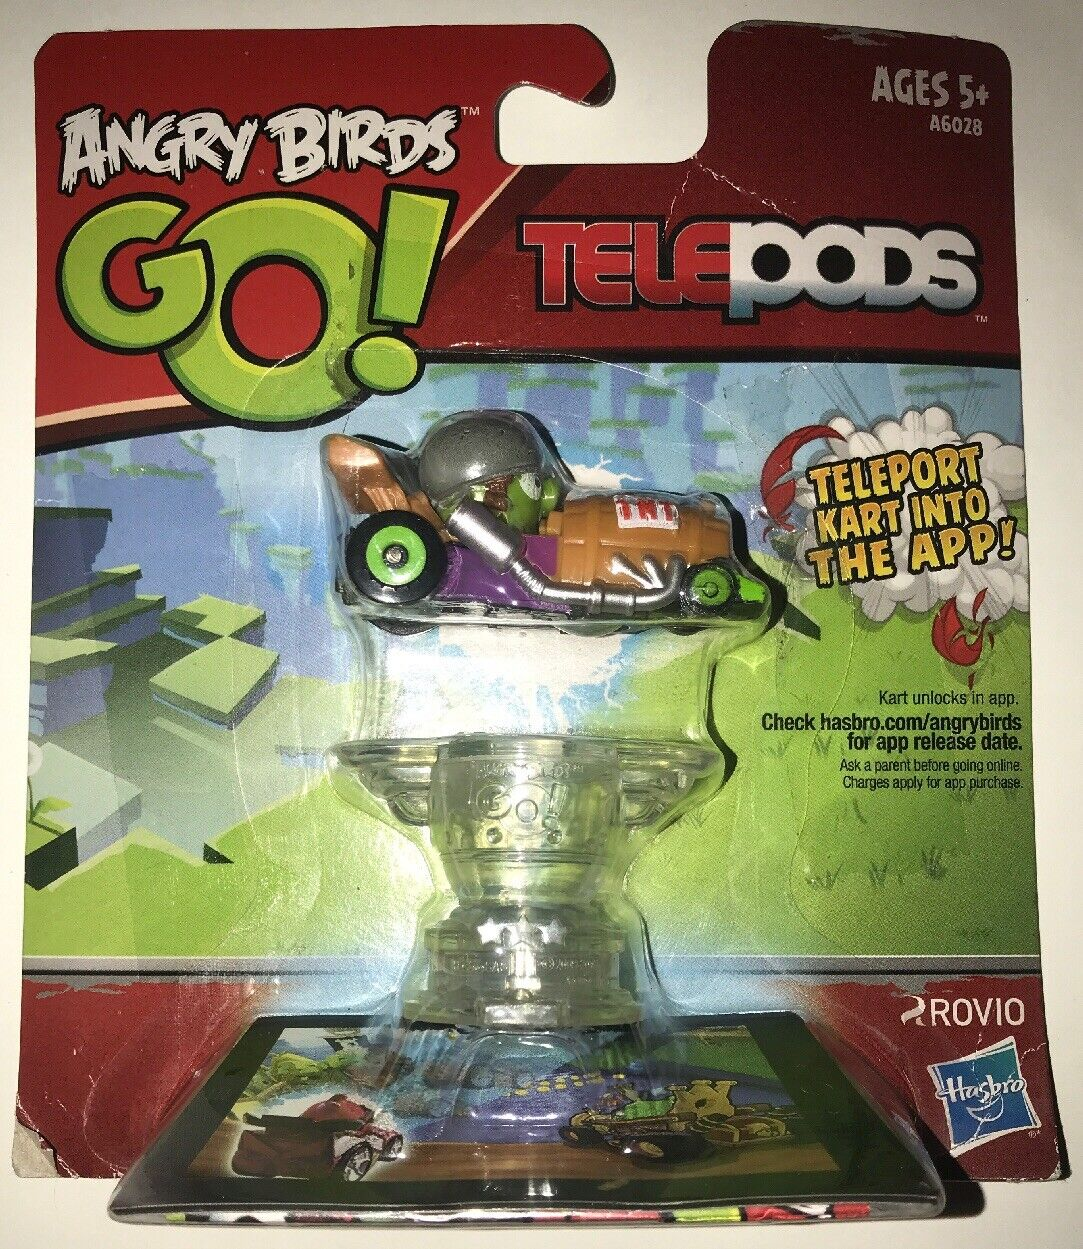 Hasbro Angry Birds Go Telepods Red Bird Kart Toy for Kids (ages 5 ...